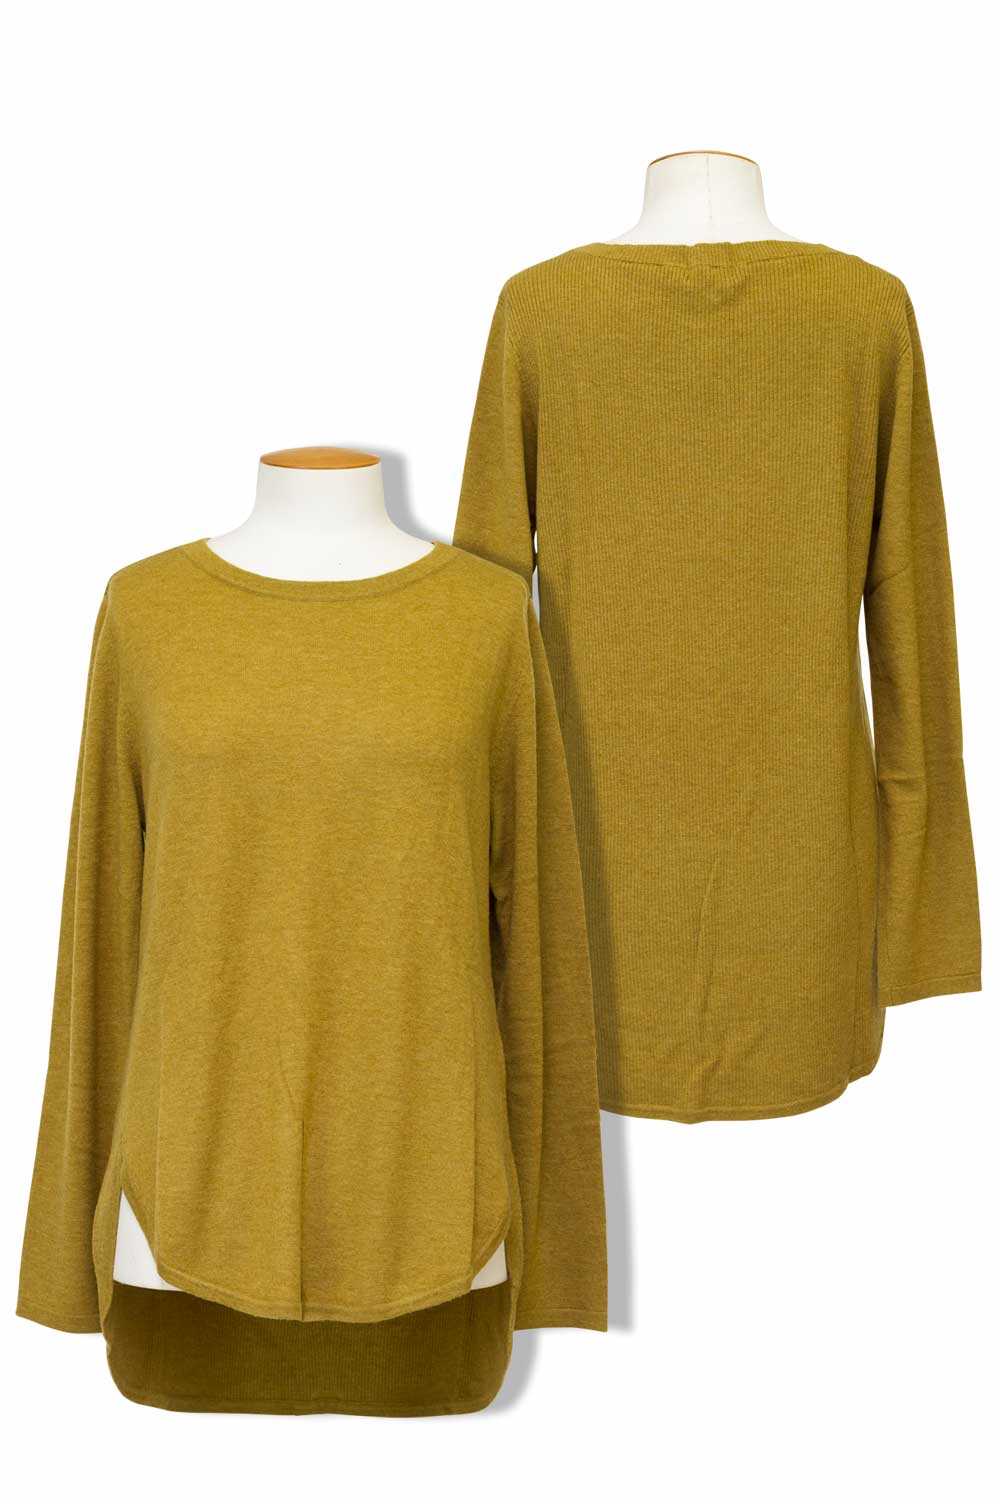 Bridge and Lord - BL1605 Curved Hem Sweater